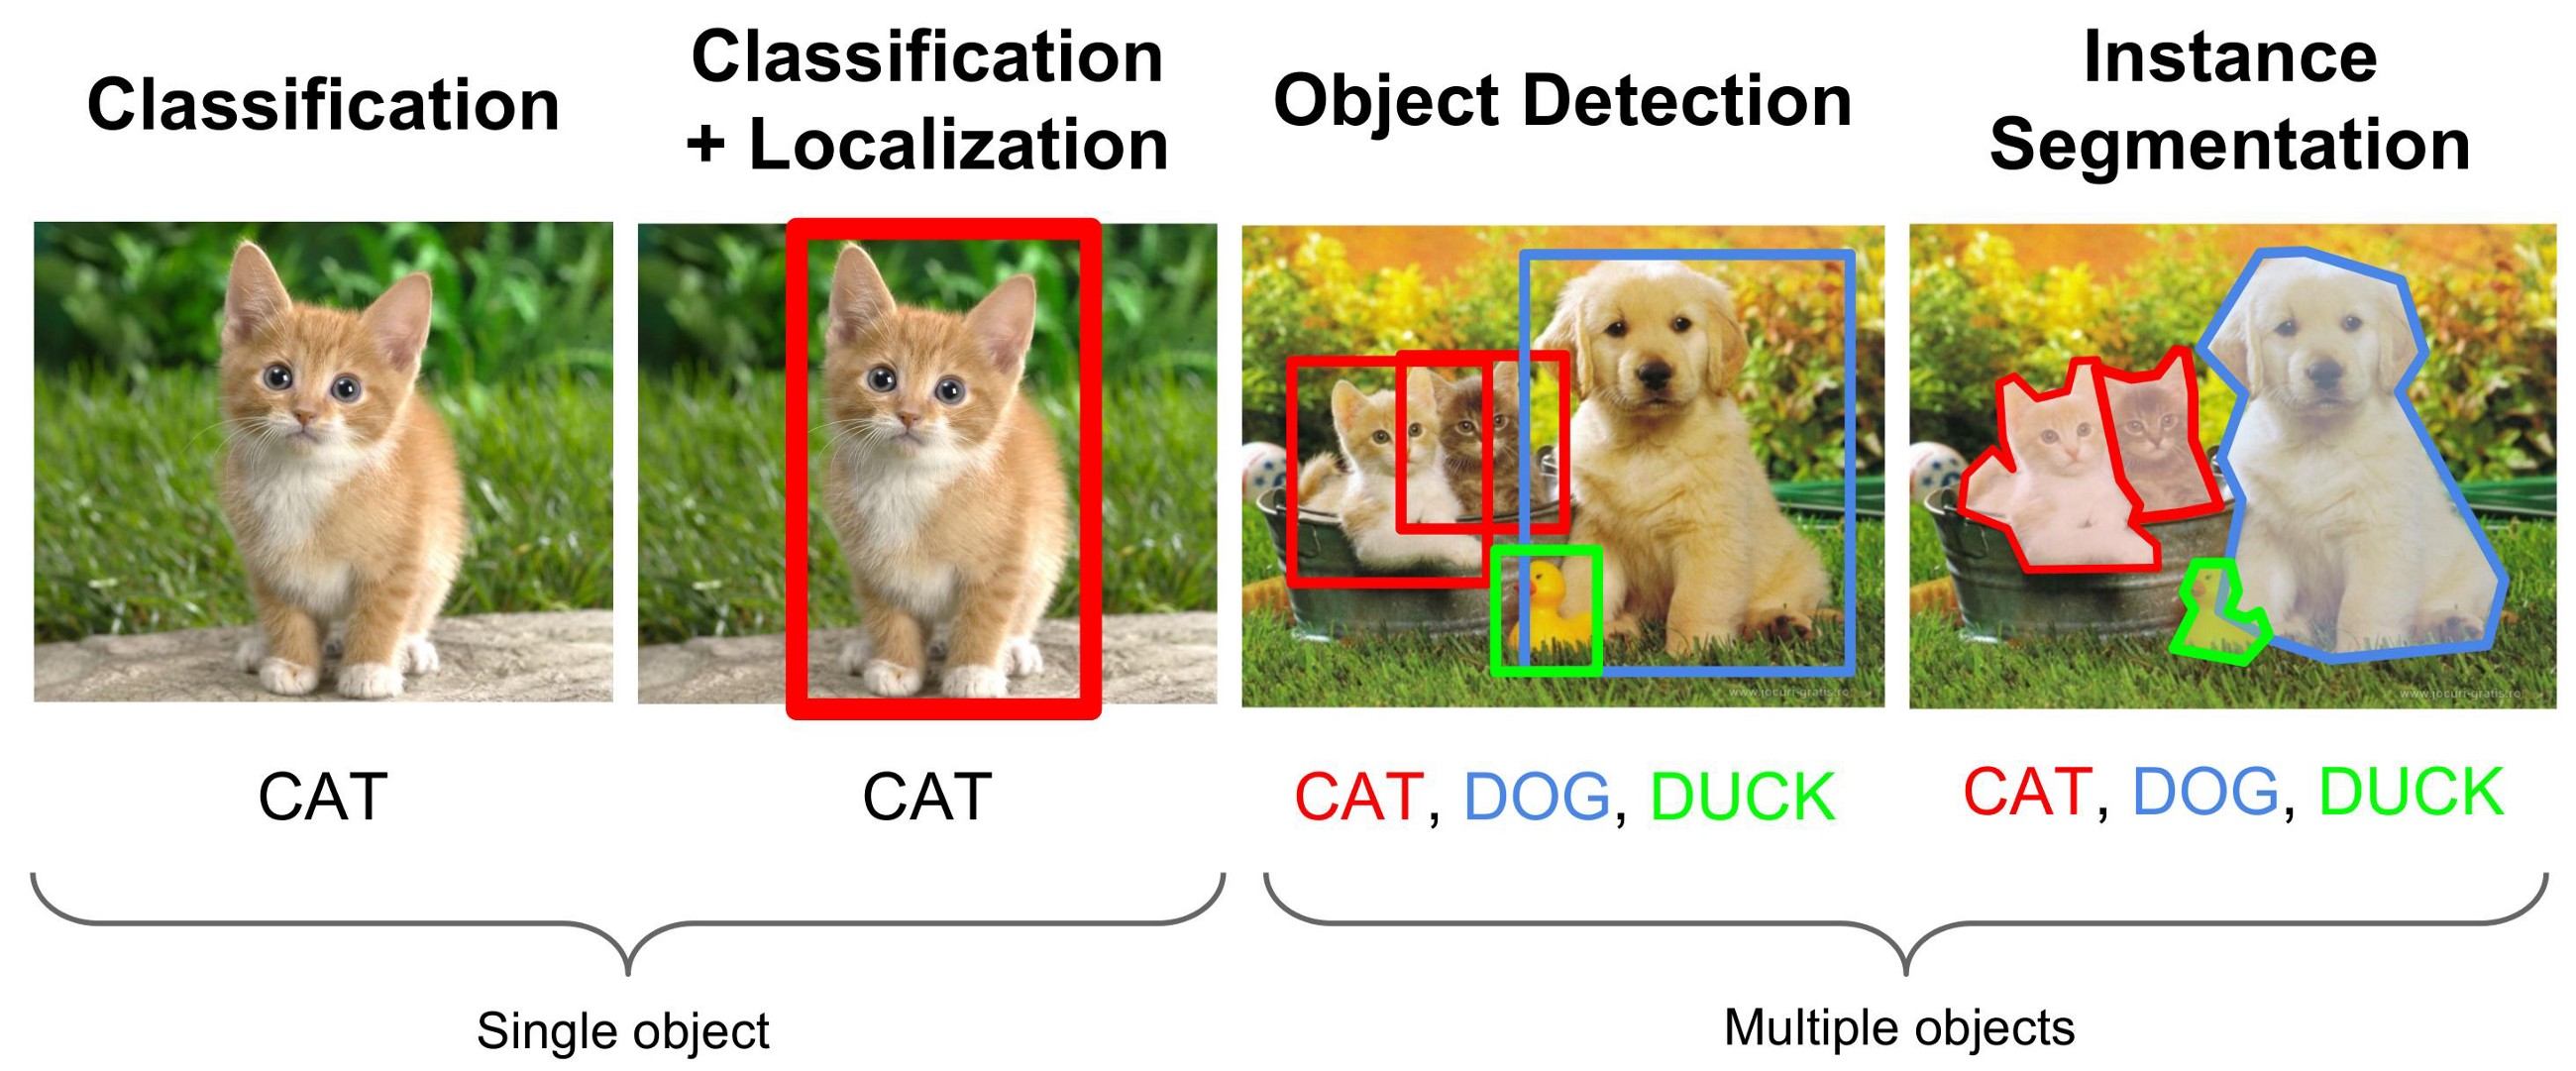 Calssification, localization, object detection and instance segmentation of one and multiple objects exemplified